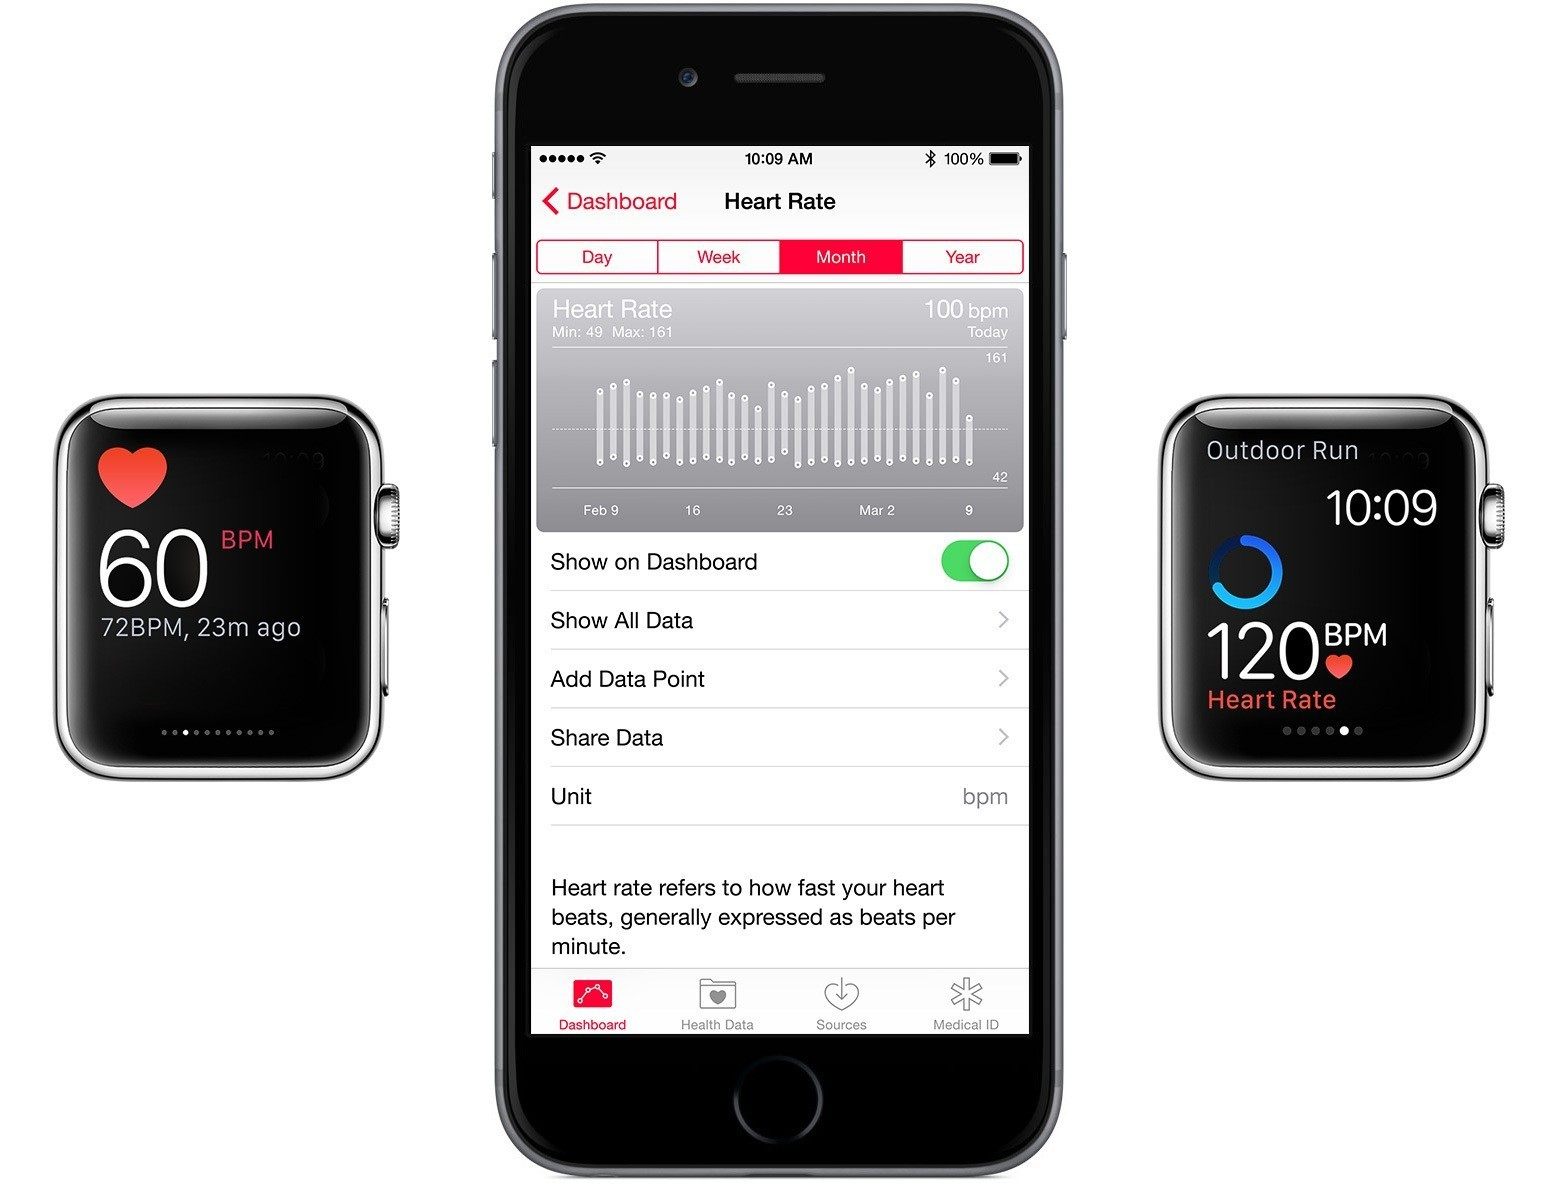 Apple says Watch OS 1.0.1 attempts to record heart rate every ten minutes, but won't if arm is moving